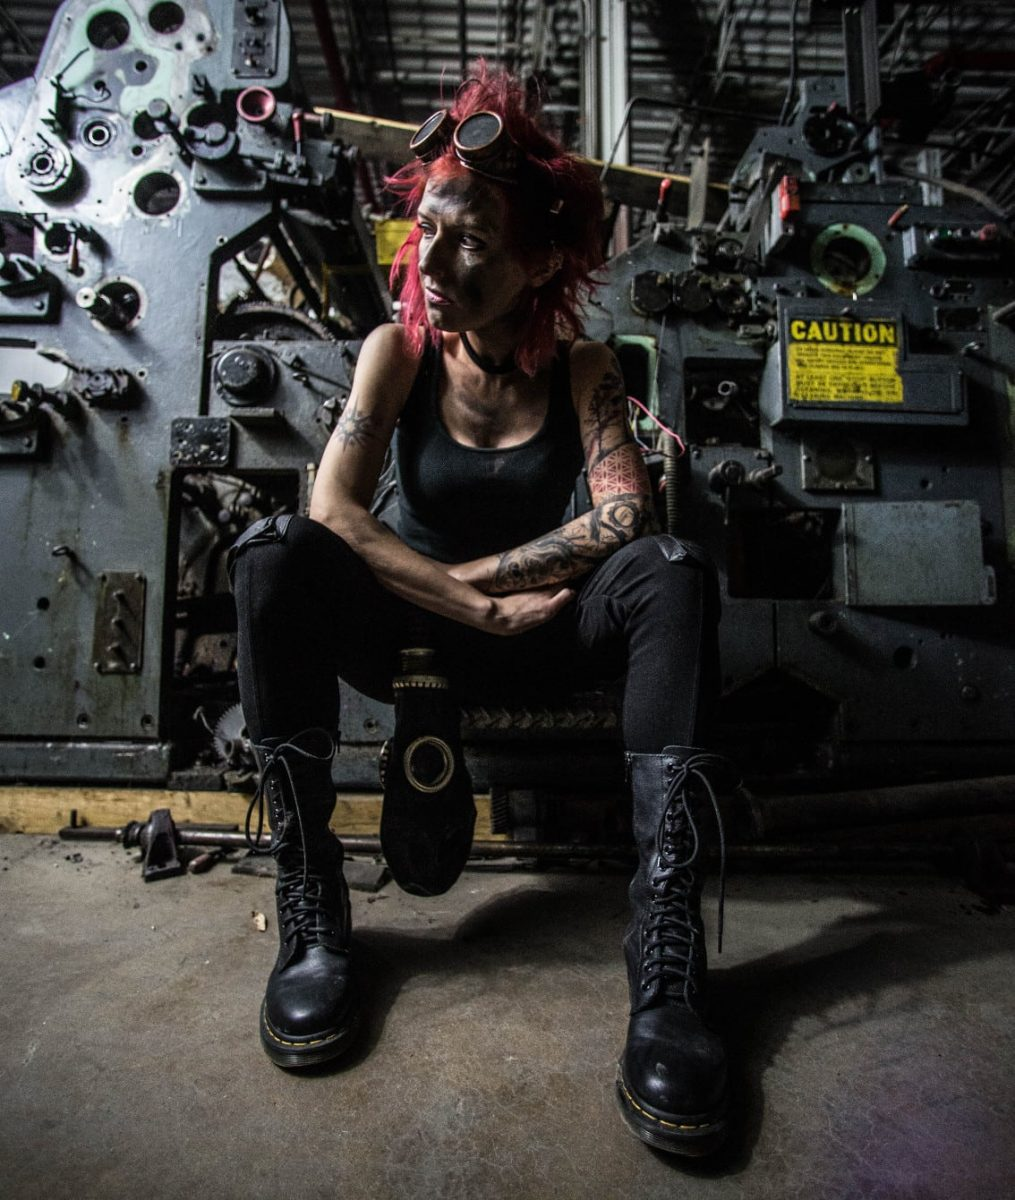 Industrial/Electro artist I Ya Toyah premieres video new single'Farewell-Mirrors Don't Lie' on Side-Line